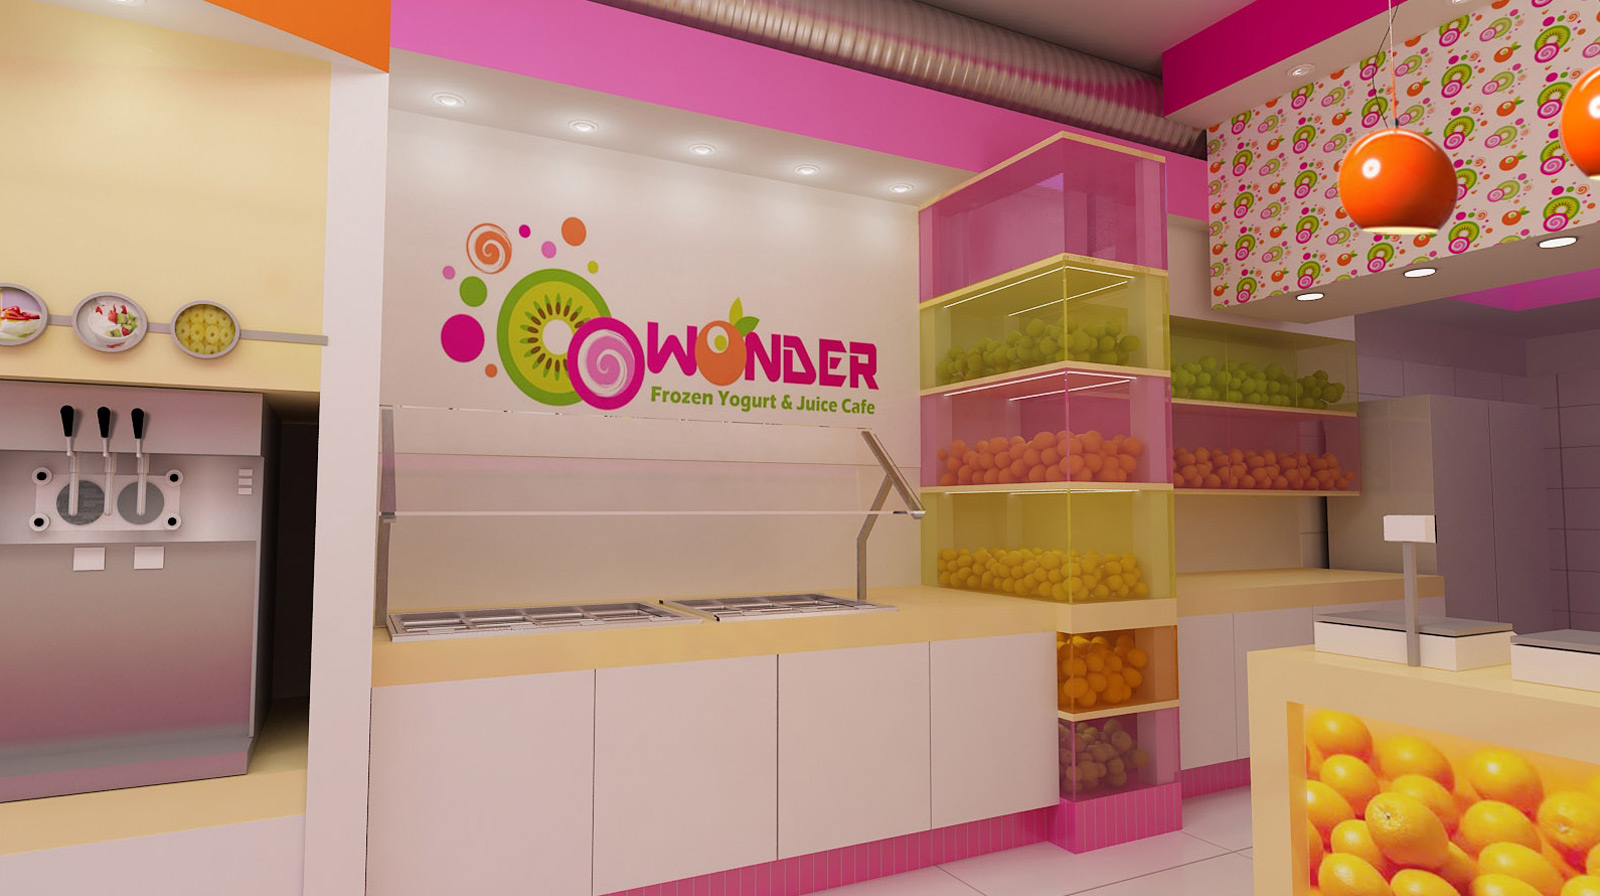 o-o-wonder store interior design